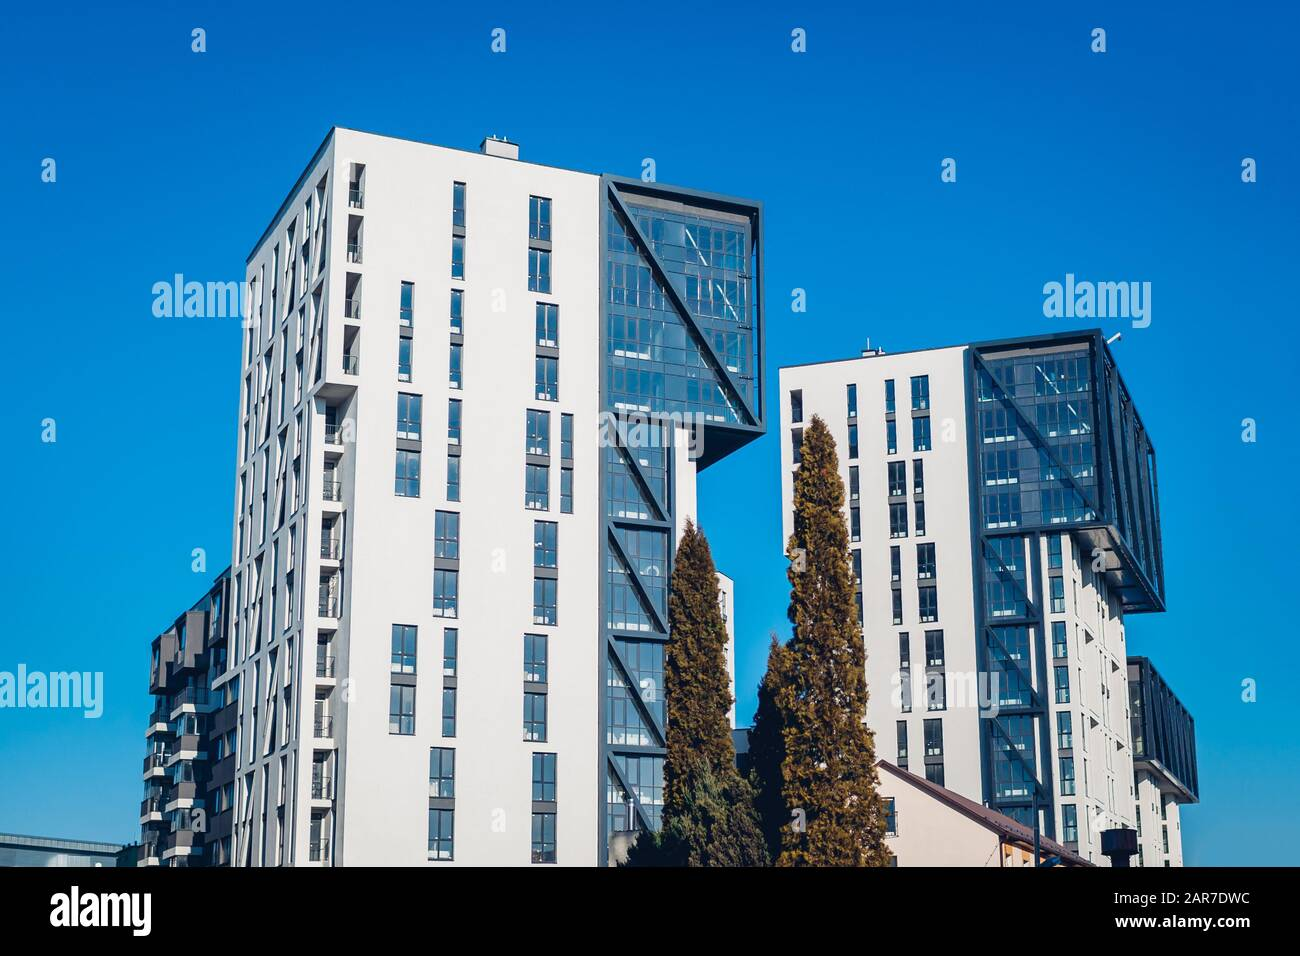 New Multistorey Office Residential Buildings Two Modern Houses Contemporary Architecture Design Exterior Stock Photo Alamy,Web Development And Design Foundations With Html5 8th Edition